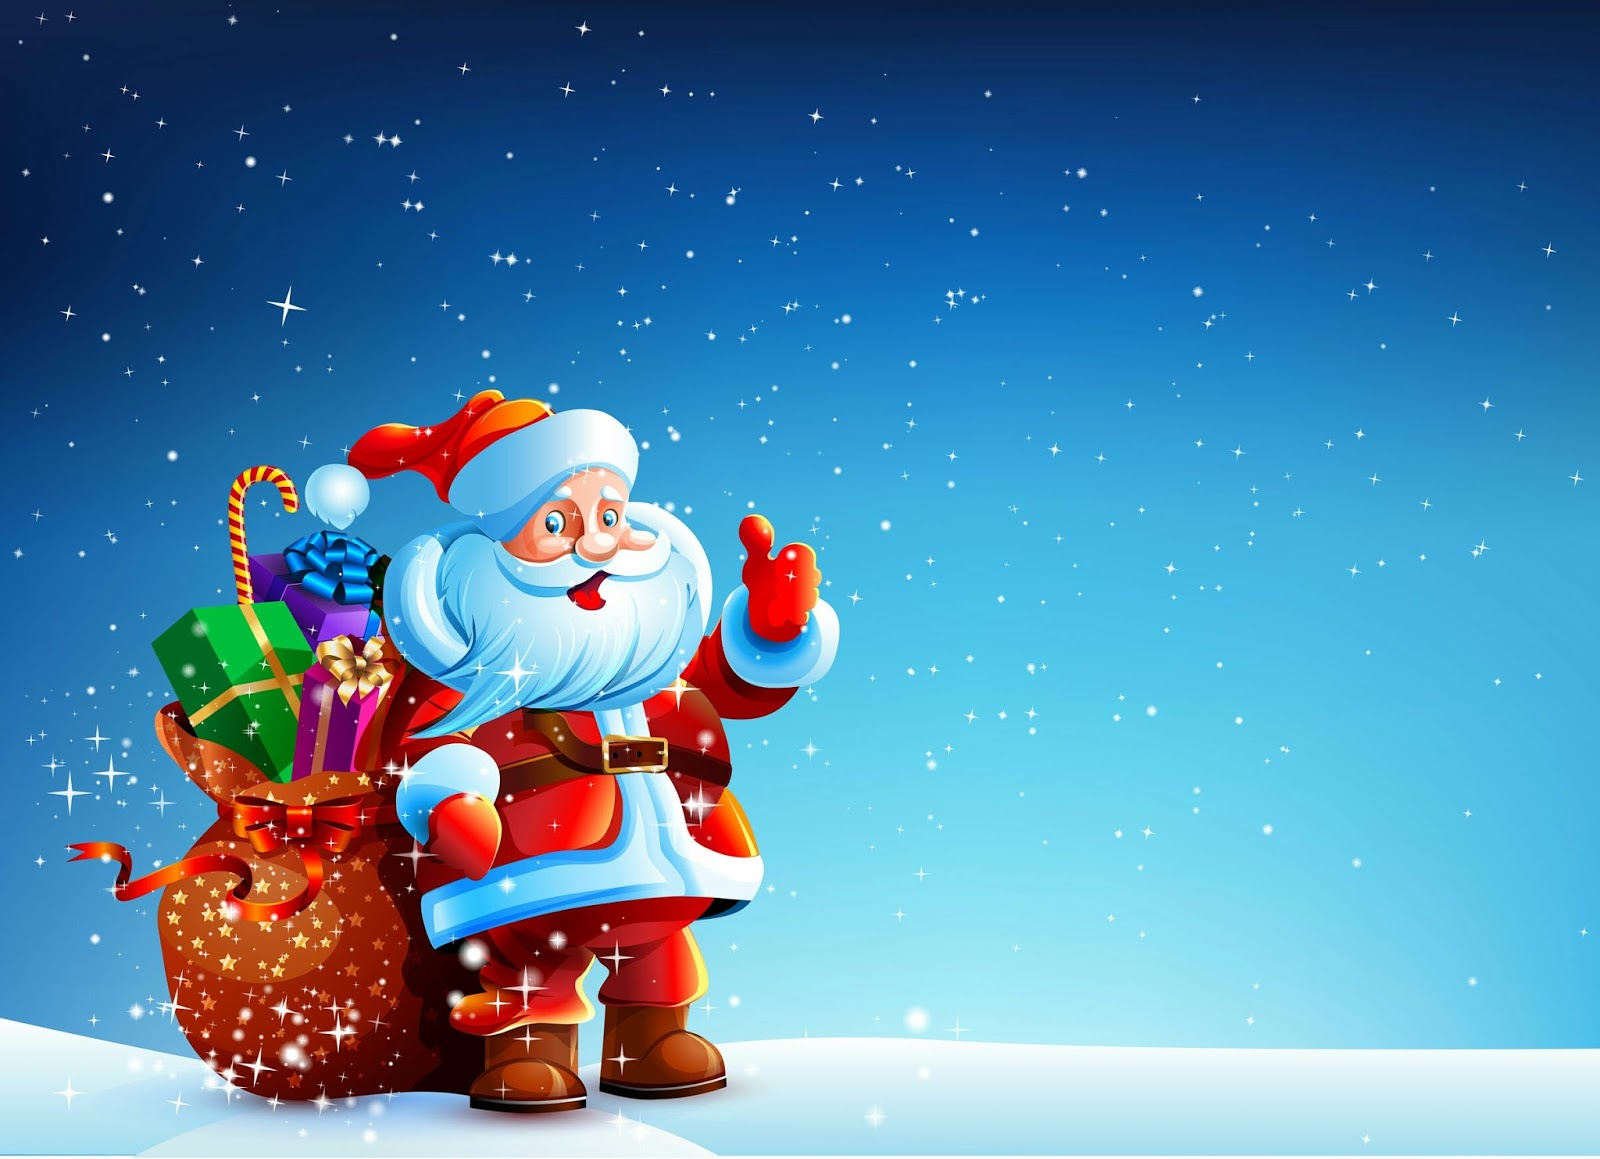 Christmas Background Picsart.Hd Background For Christmas Full Hd Wallpaper For